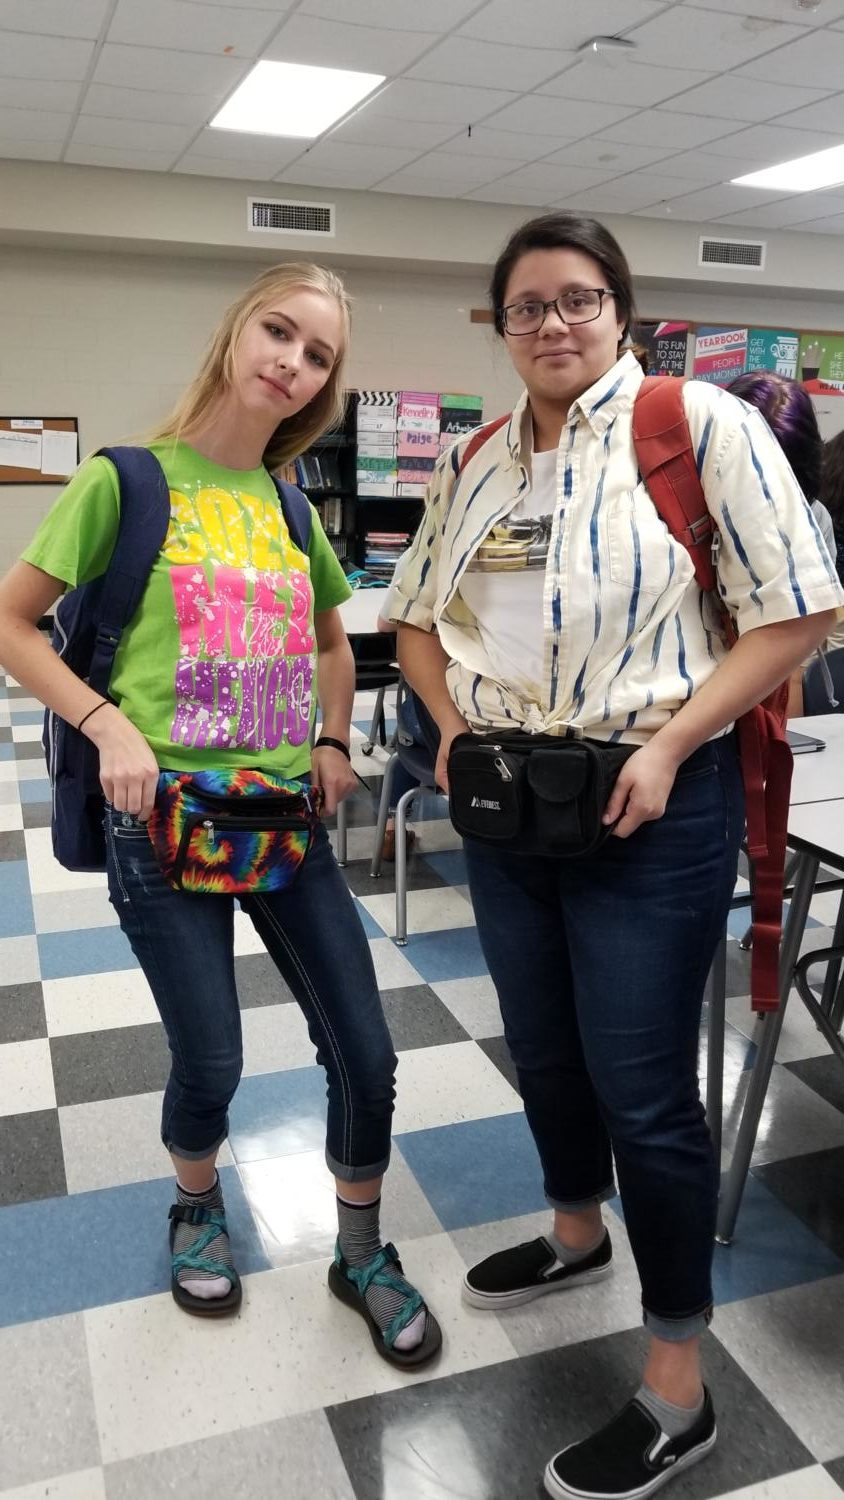 Kallina Sims and Pricilla Perez, seniors, dressed up for Tacky Tourist Tuesday on September 26th, 2017.